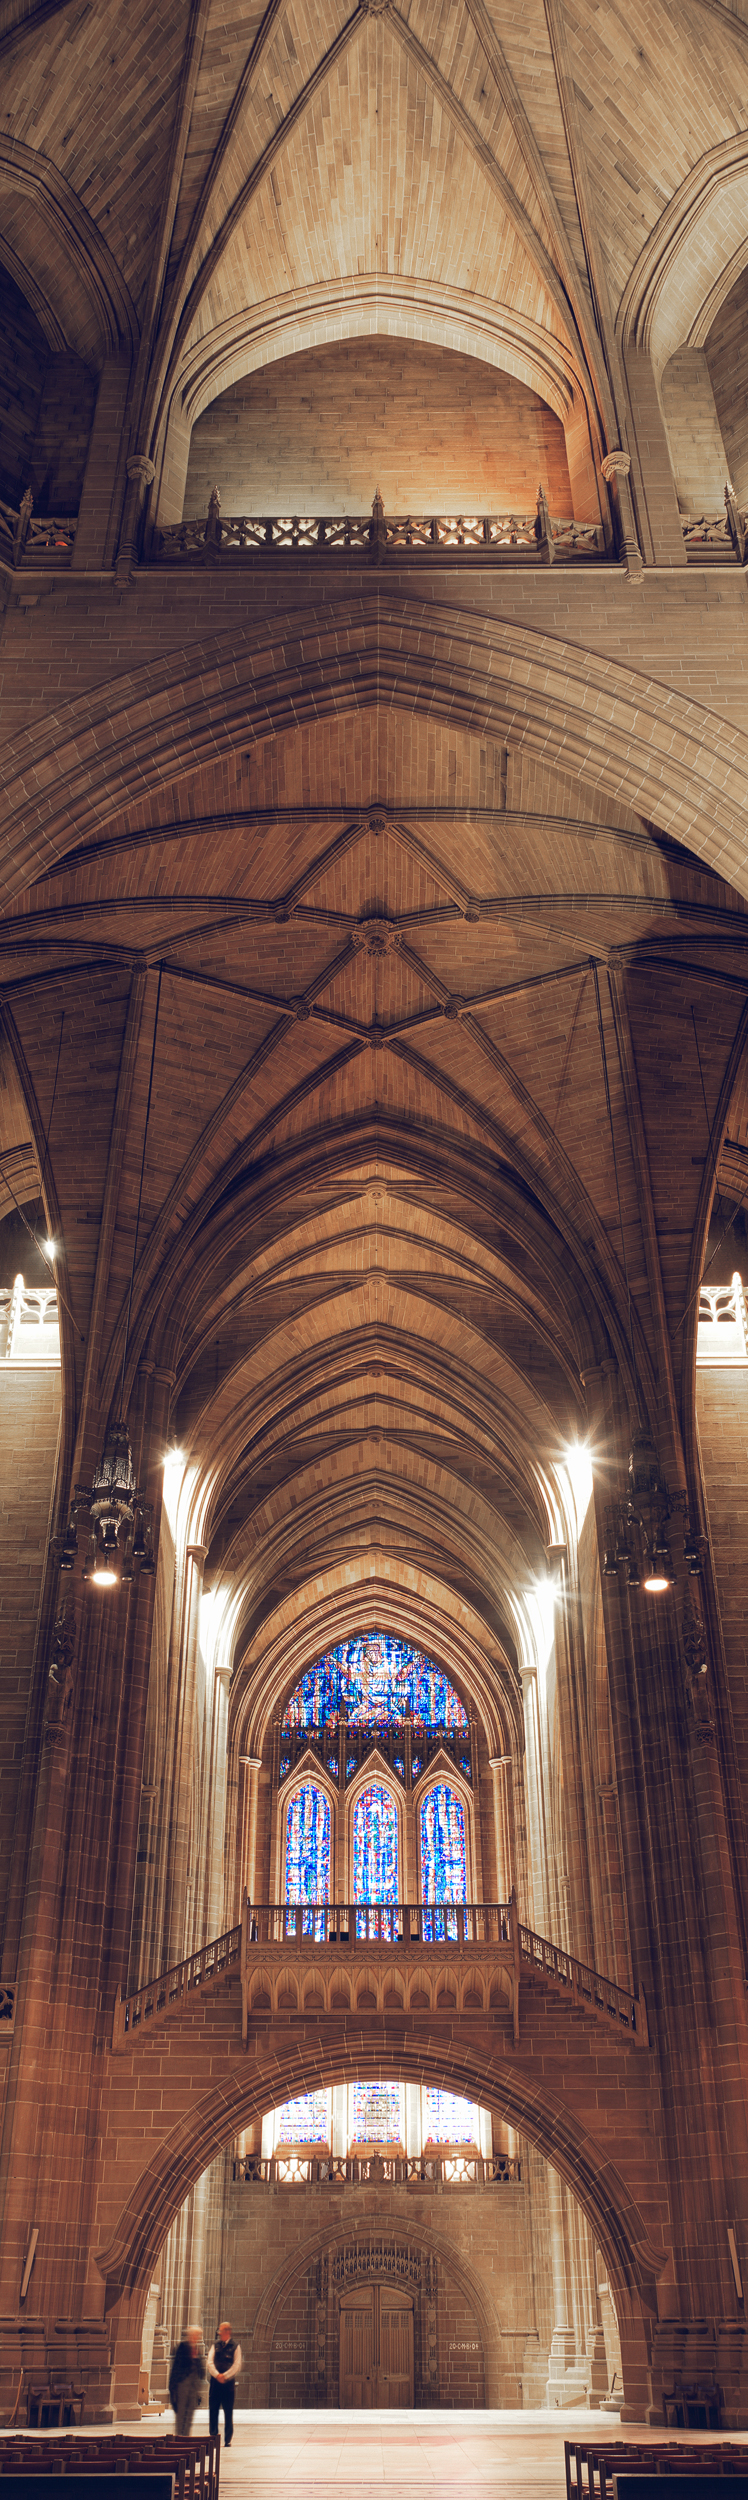 Anglican Cathedral interior.jpg